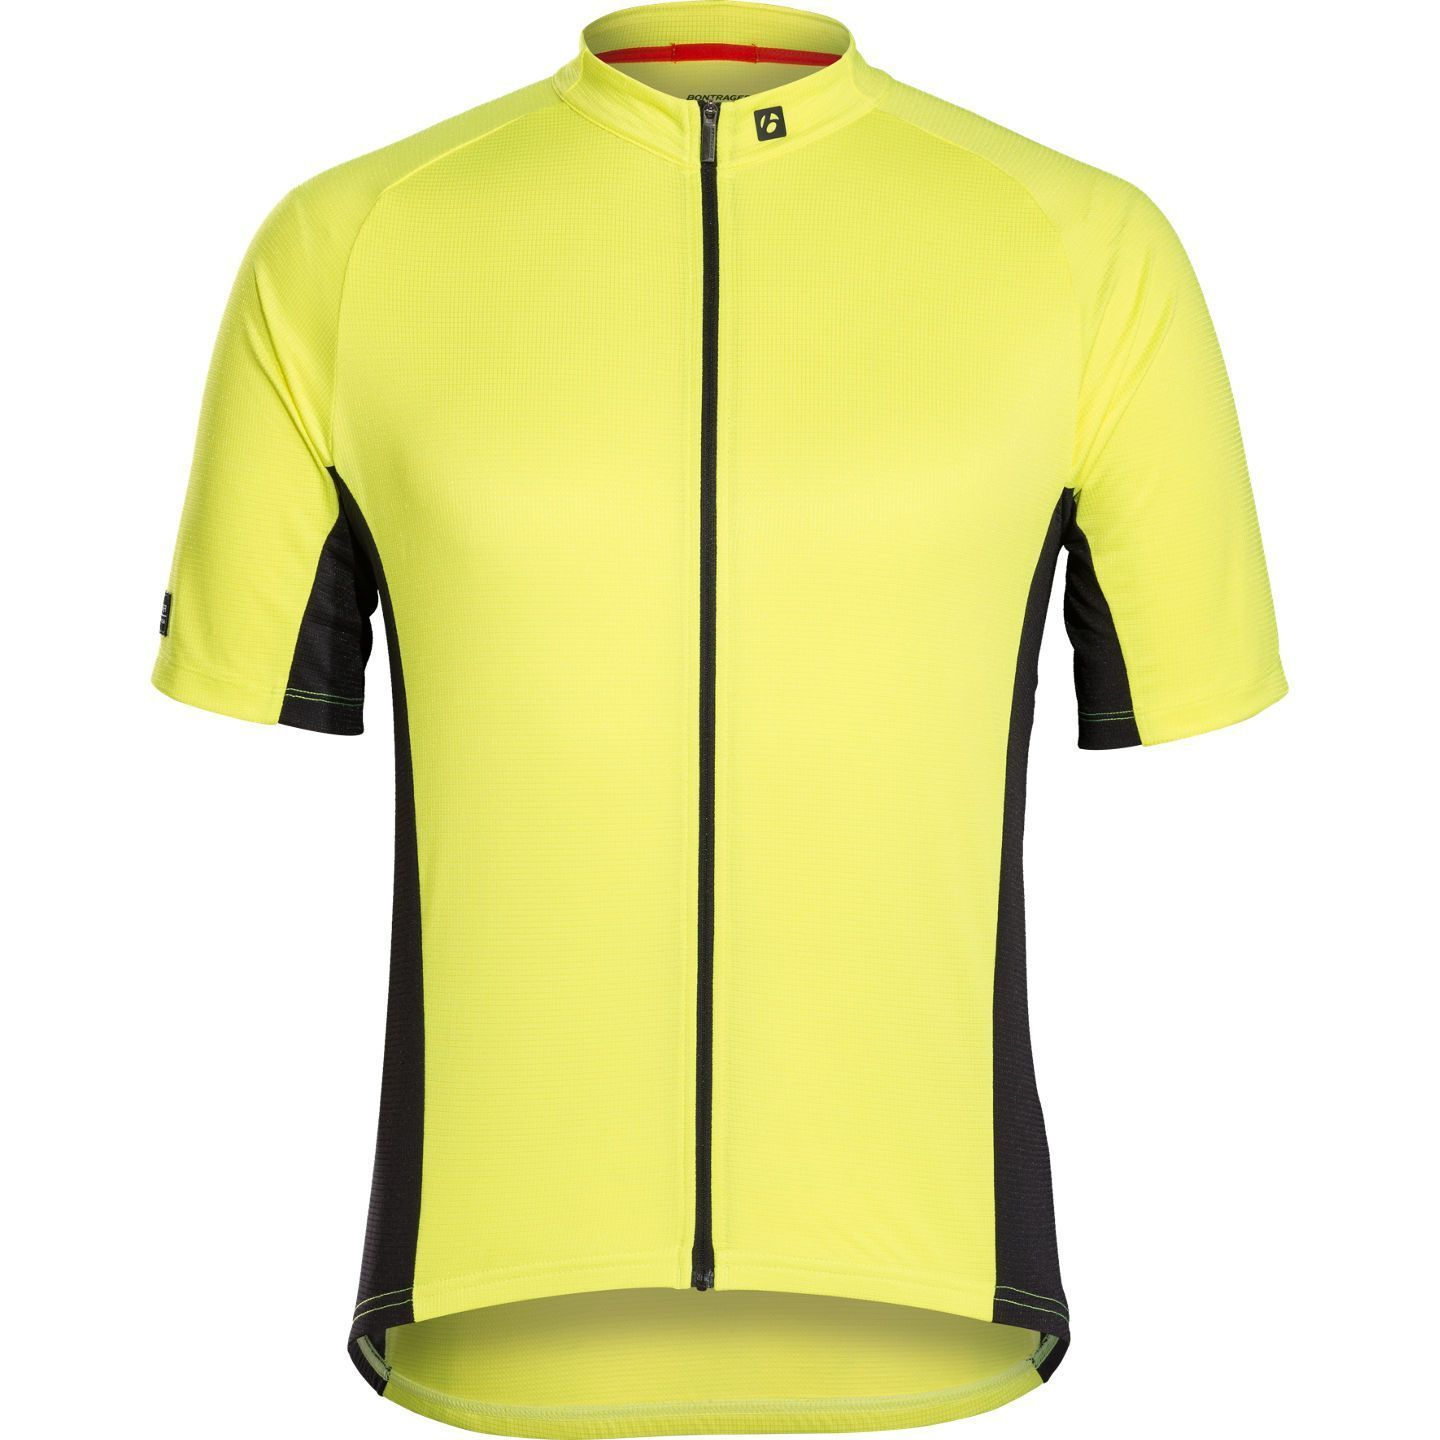 27f1e4aea Bontrager SOLSTICE short sleeve cycling jersey fluo yellow. Previous